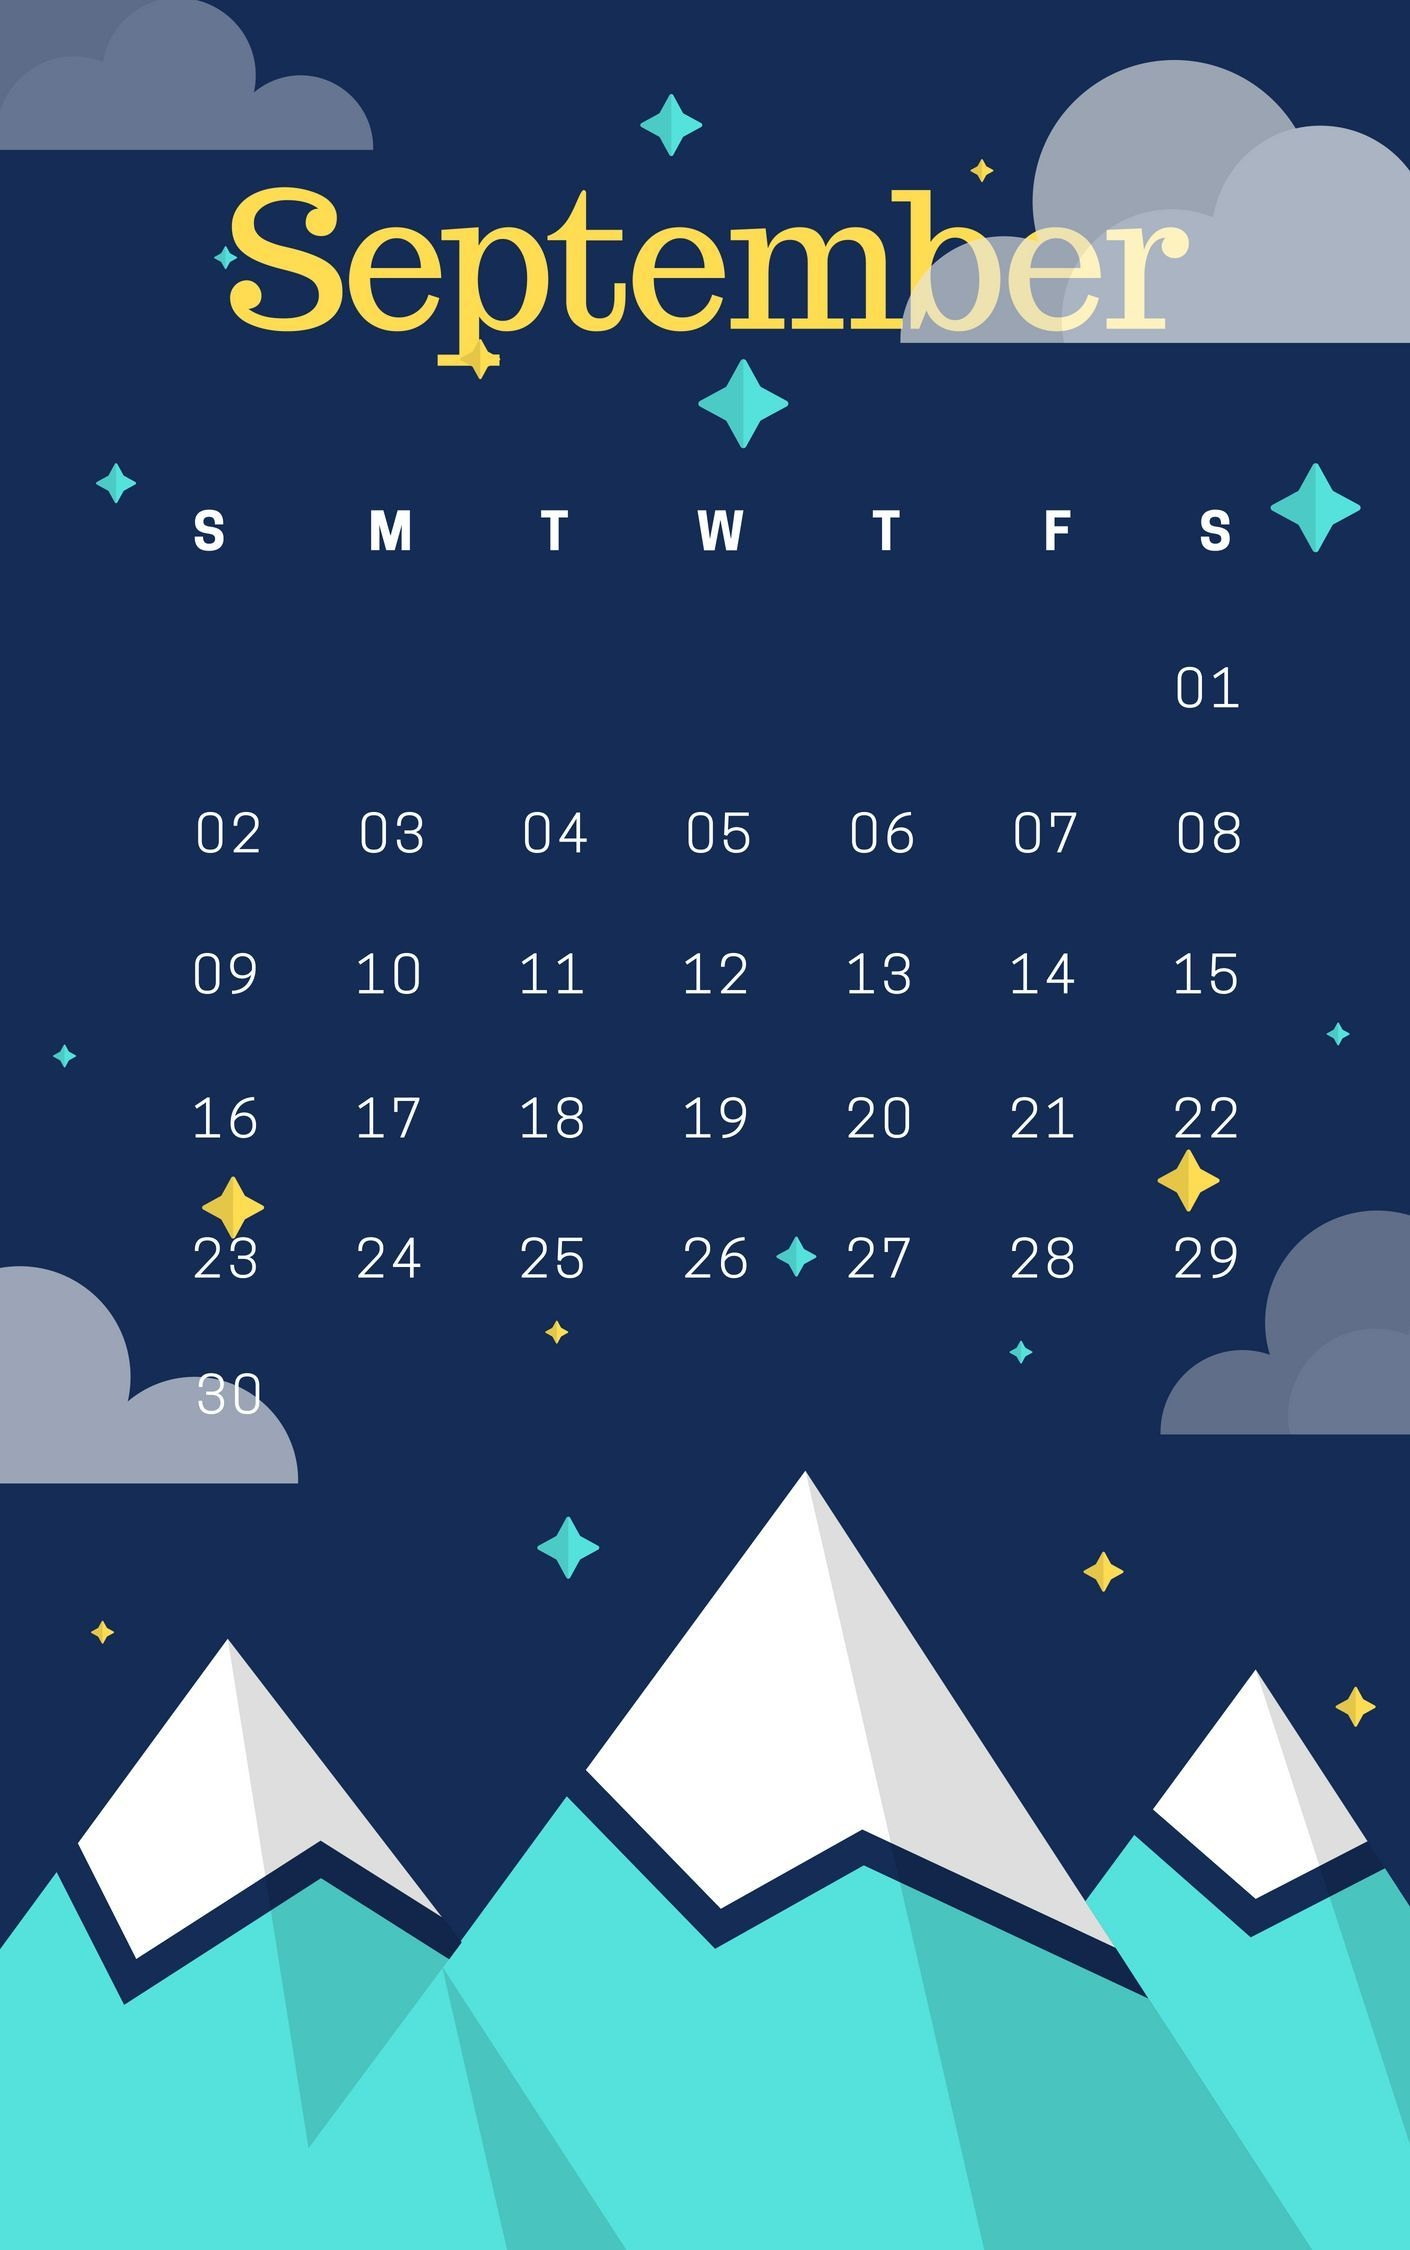 latest september 2018 iphone wallpaper iphone calendars in 2018::September 2019 iPhone Wallpaper Calendar